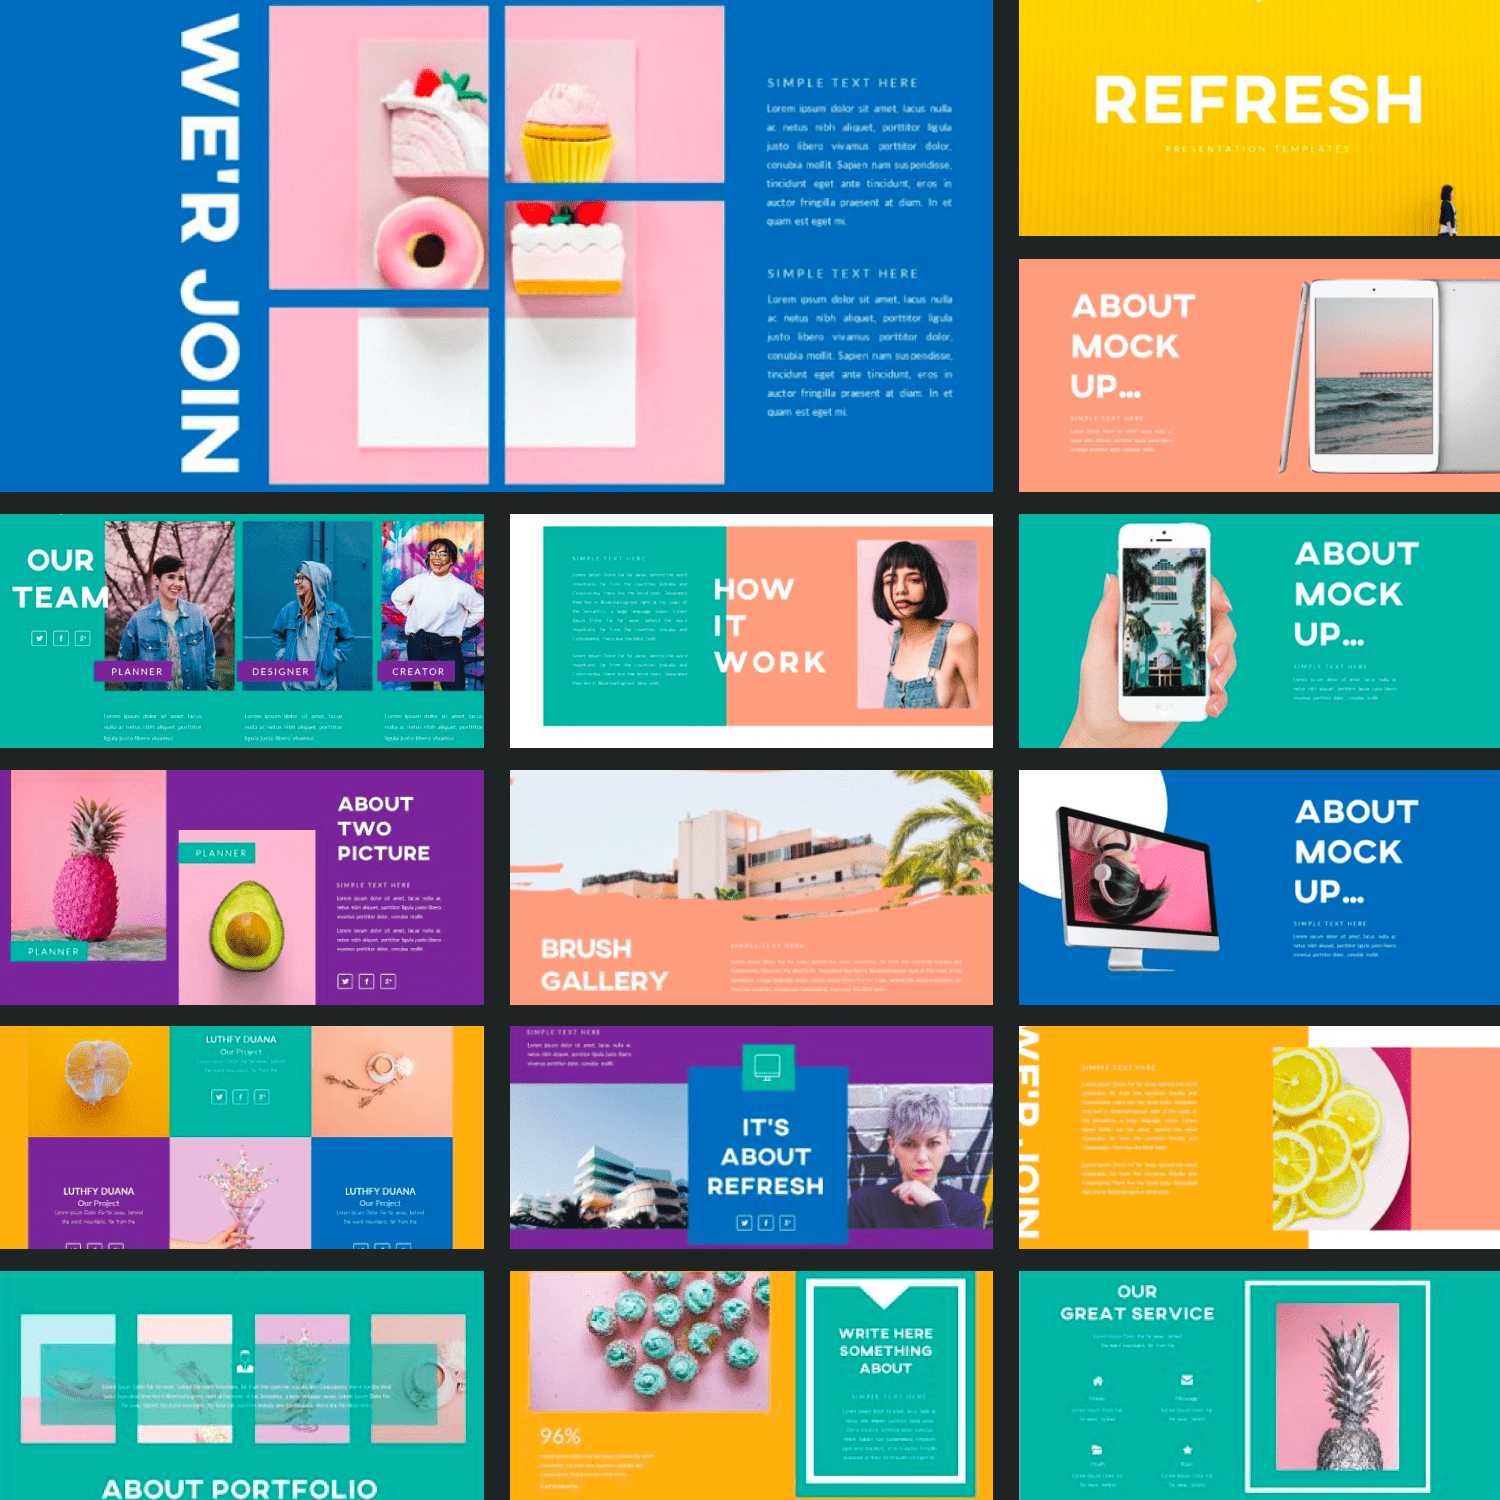 Refresh Powerpoint Template by MasterBundles Collage Image.